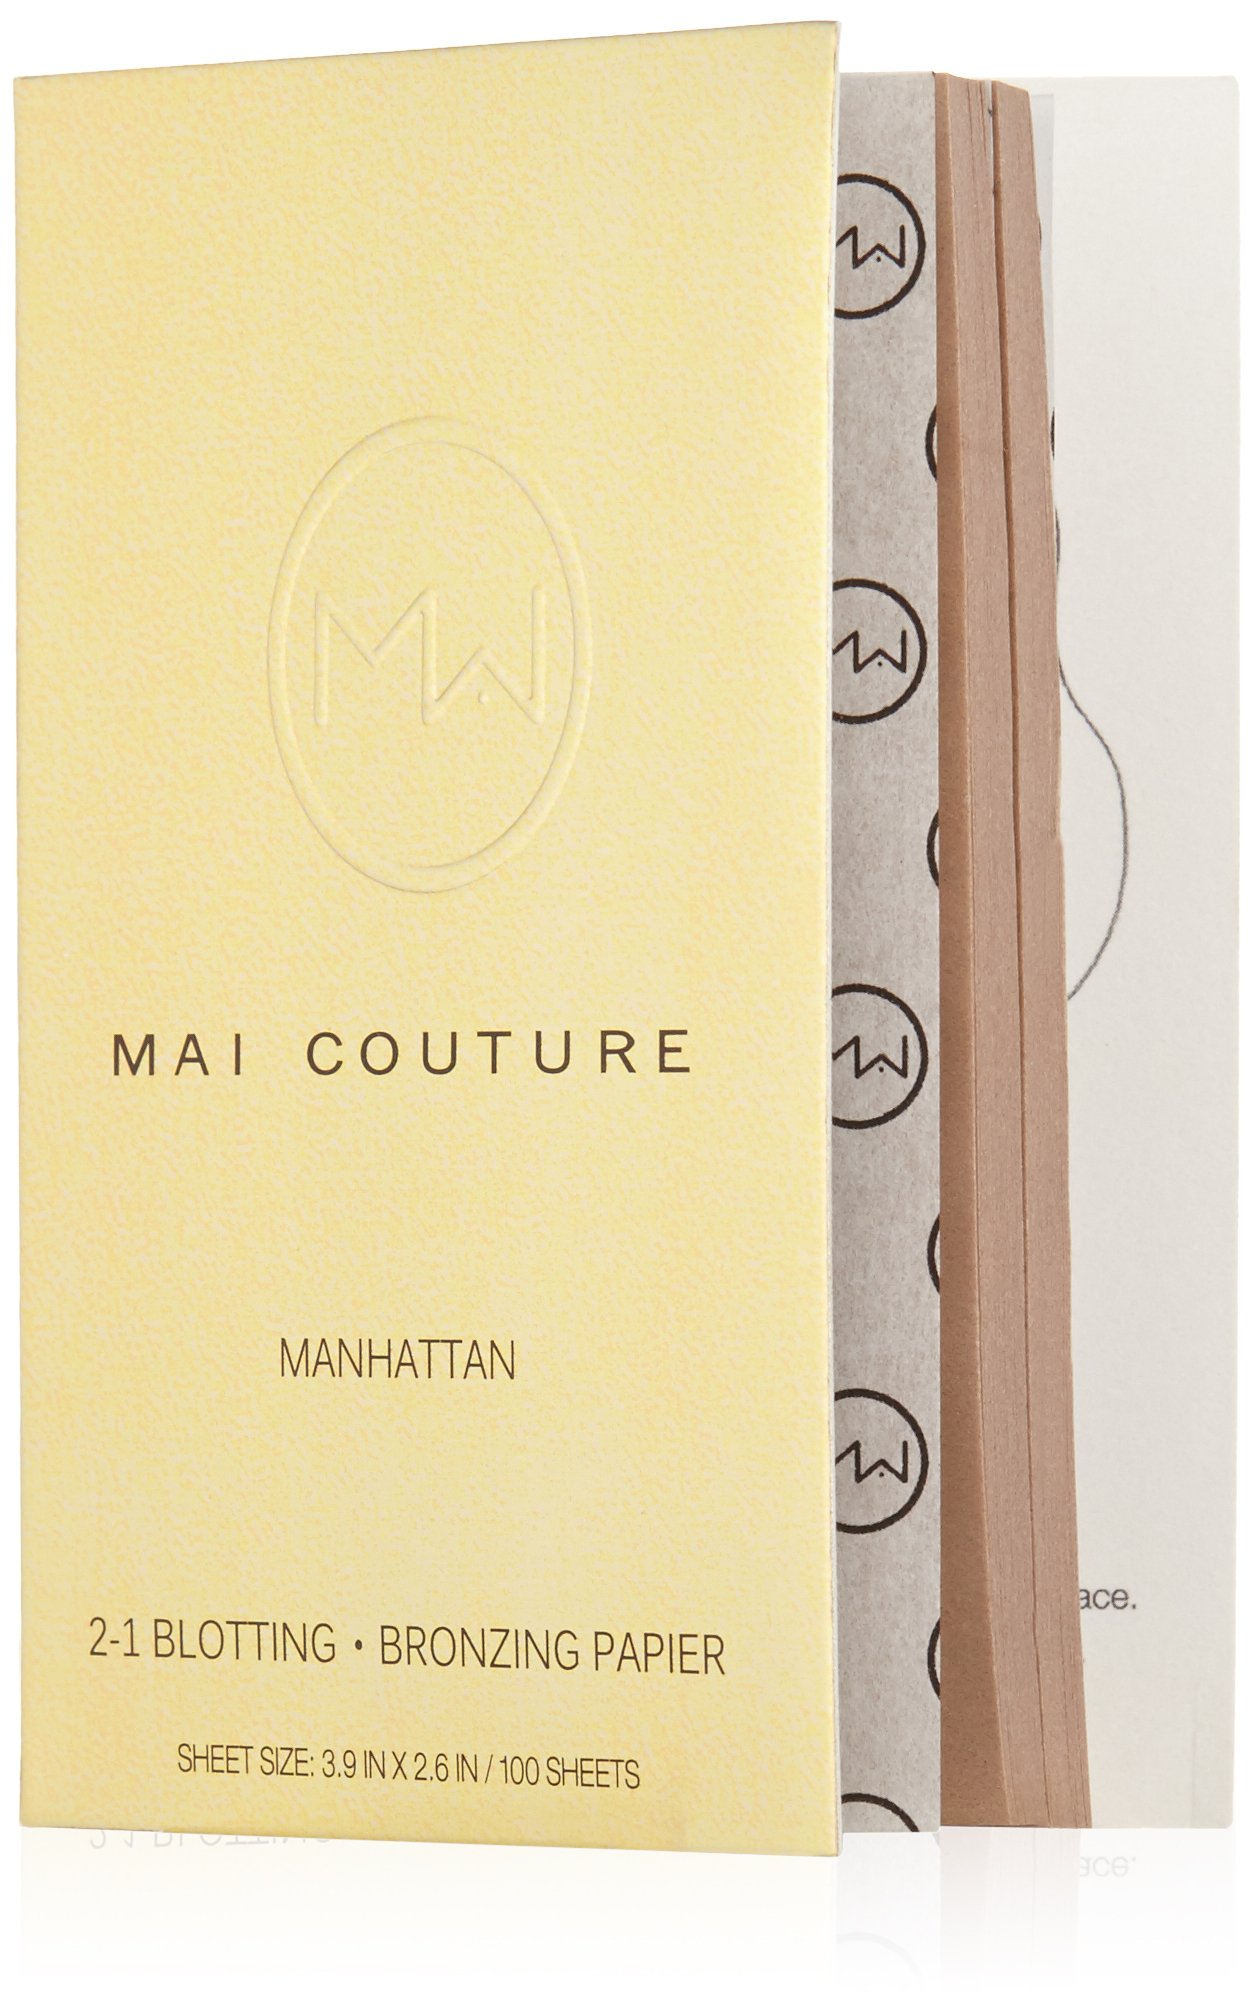 Mai Couture 2-1 Blotting and Bronzing Papier, Manhattan